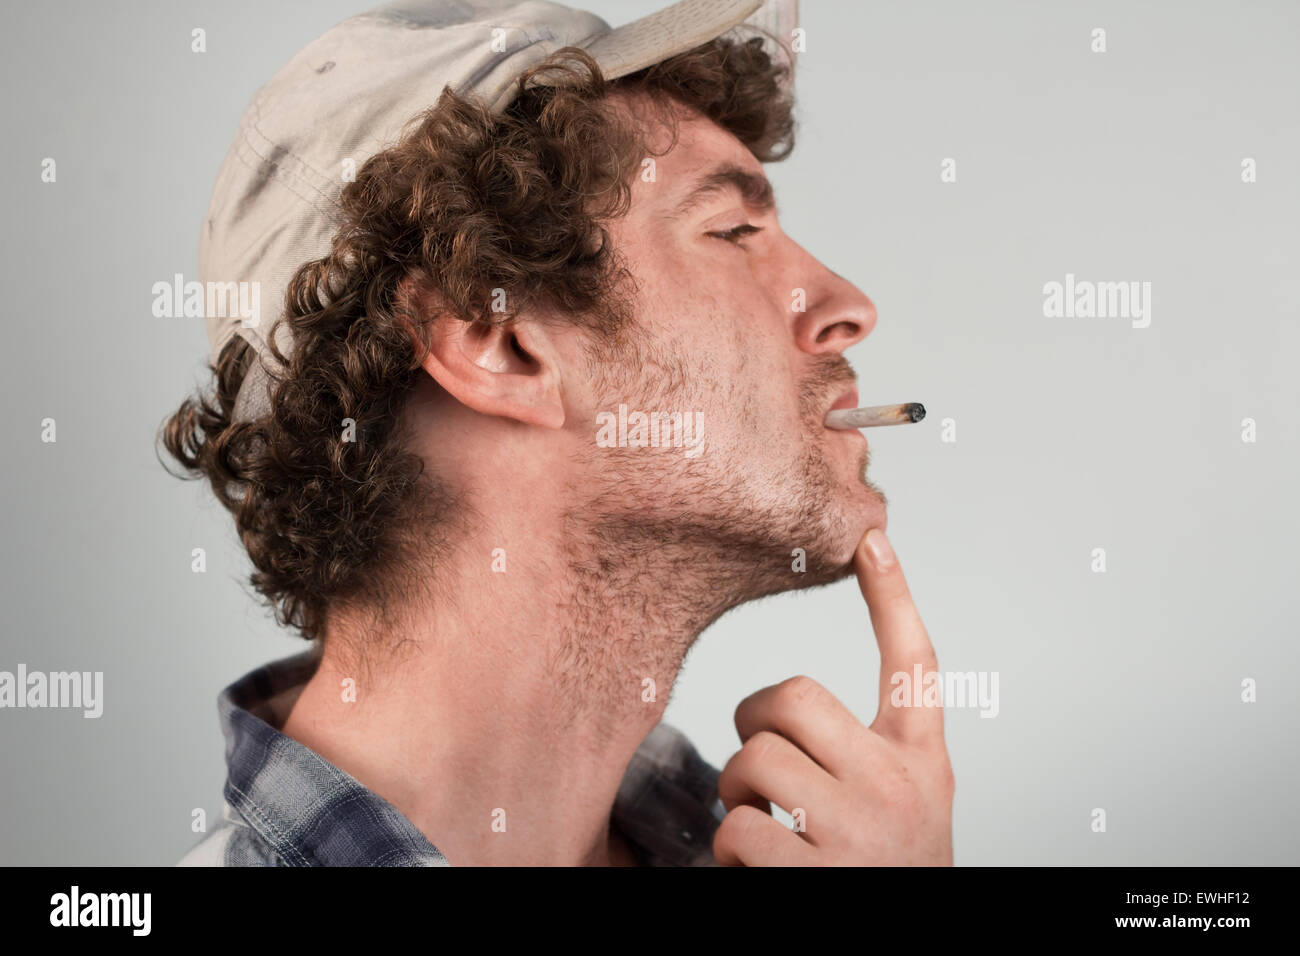 Enlightening redneck ironically has something important to say - Stock Image